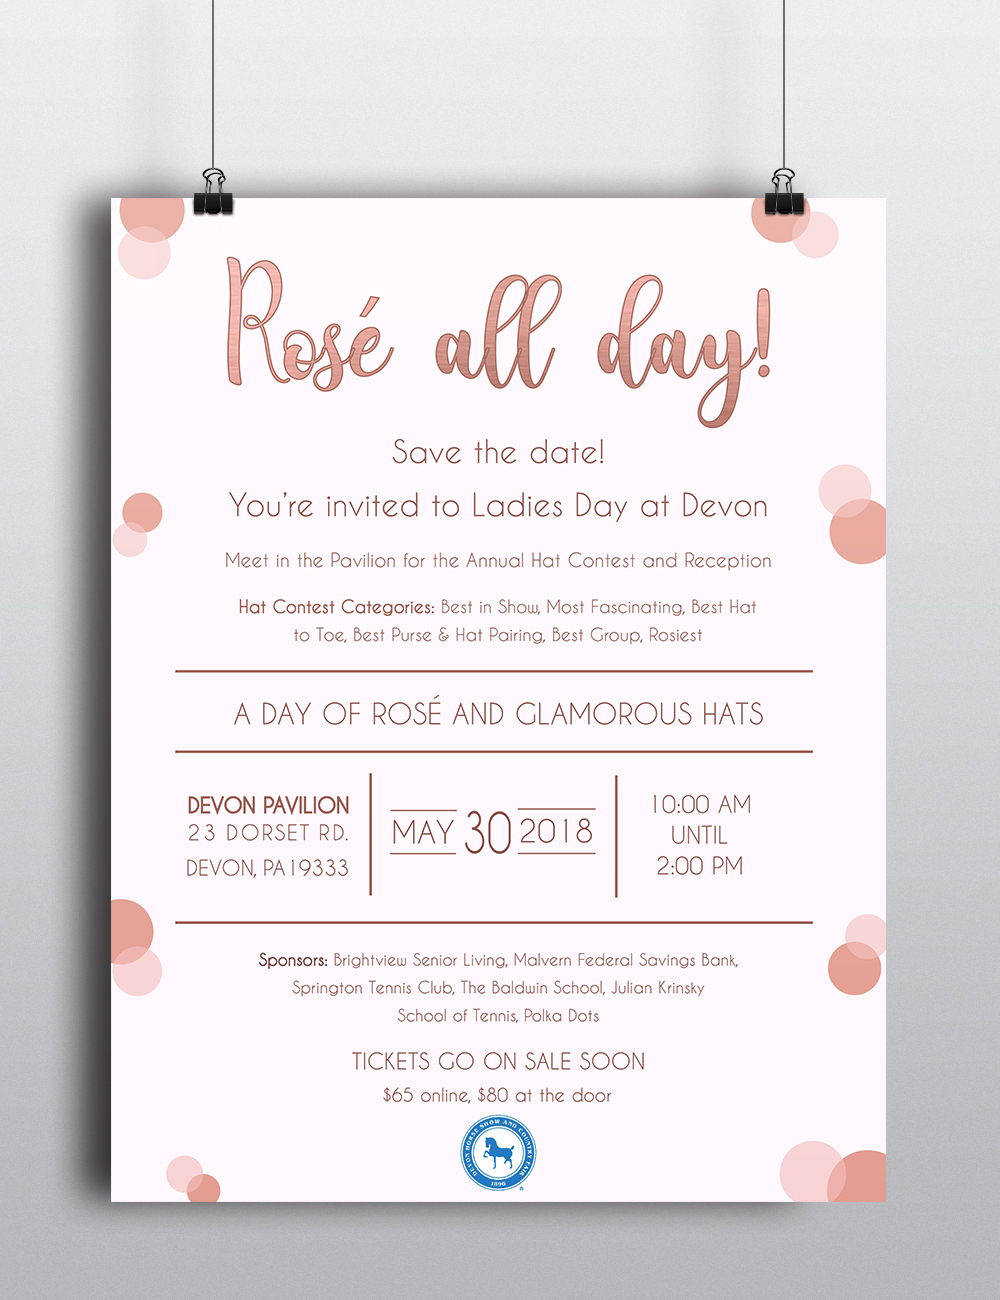 Rose-All-Day-Invite-MockUp.jpg